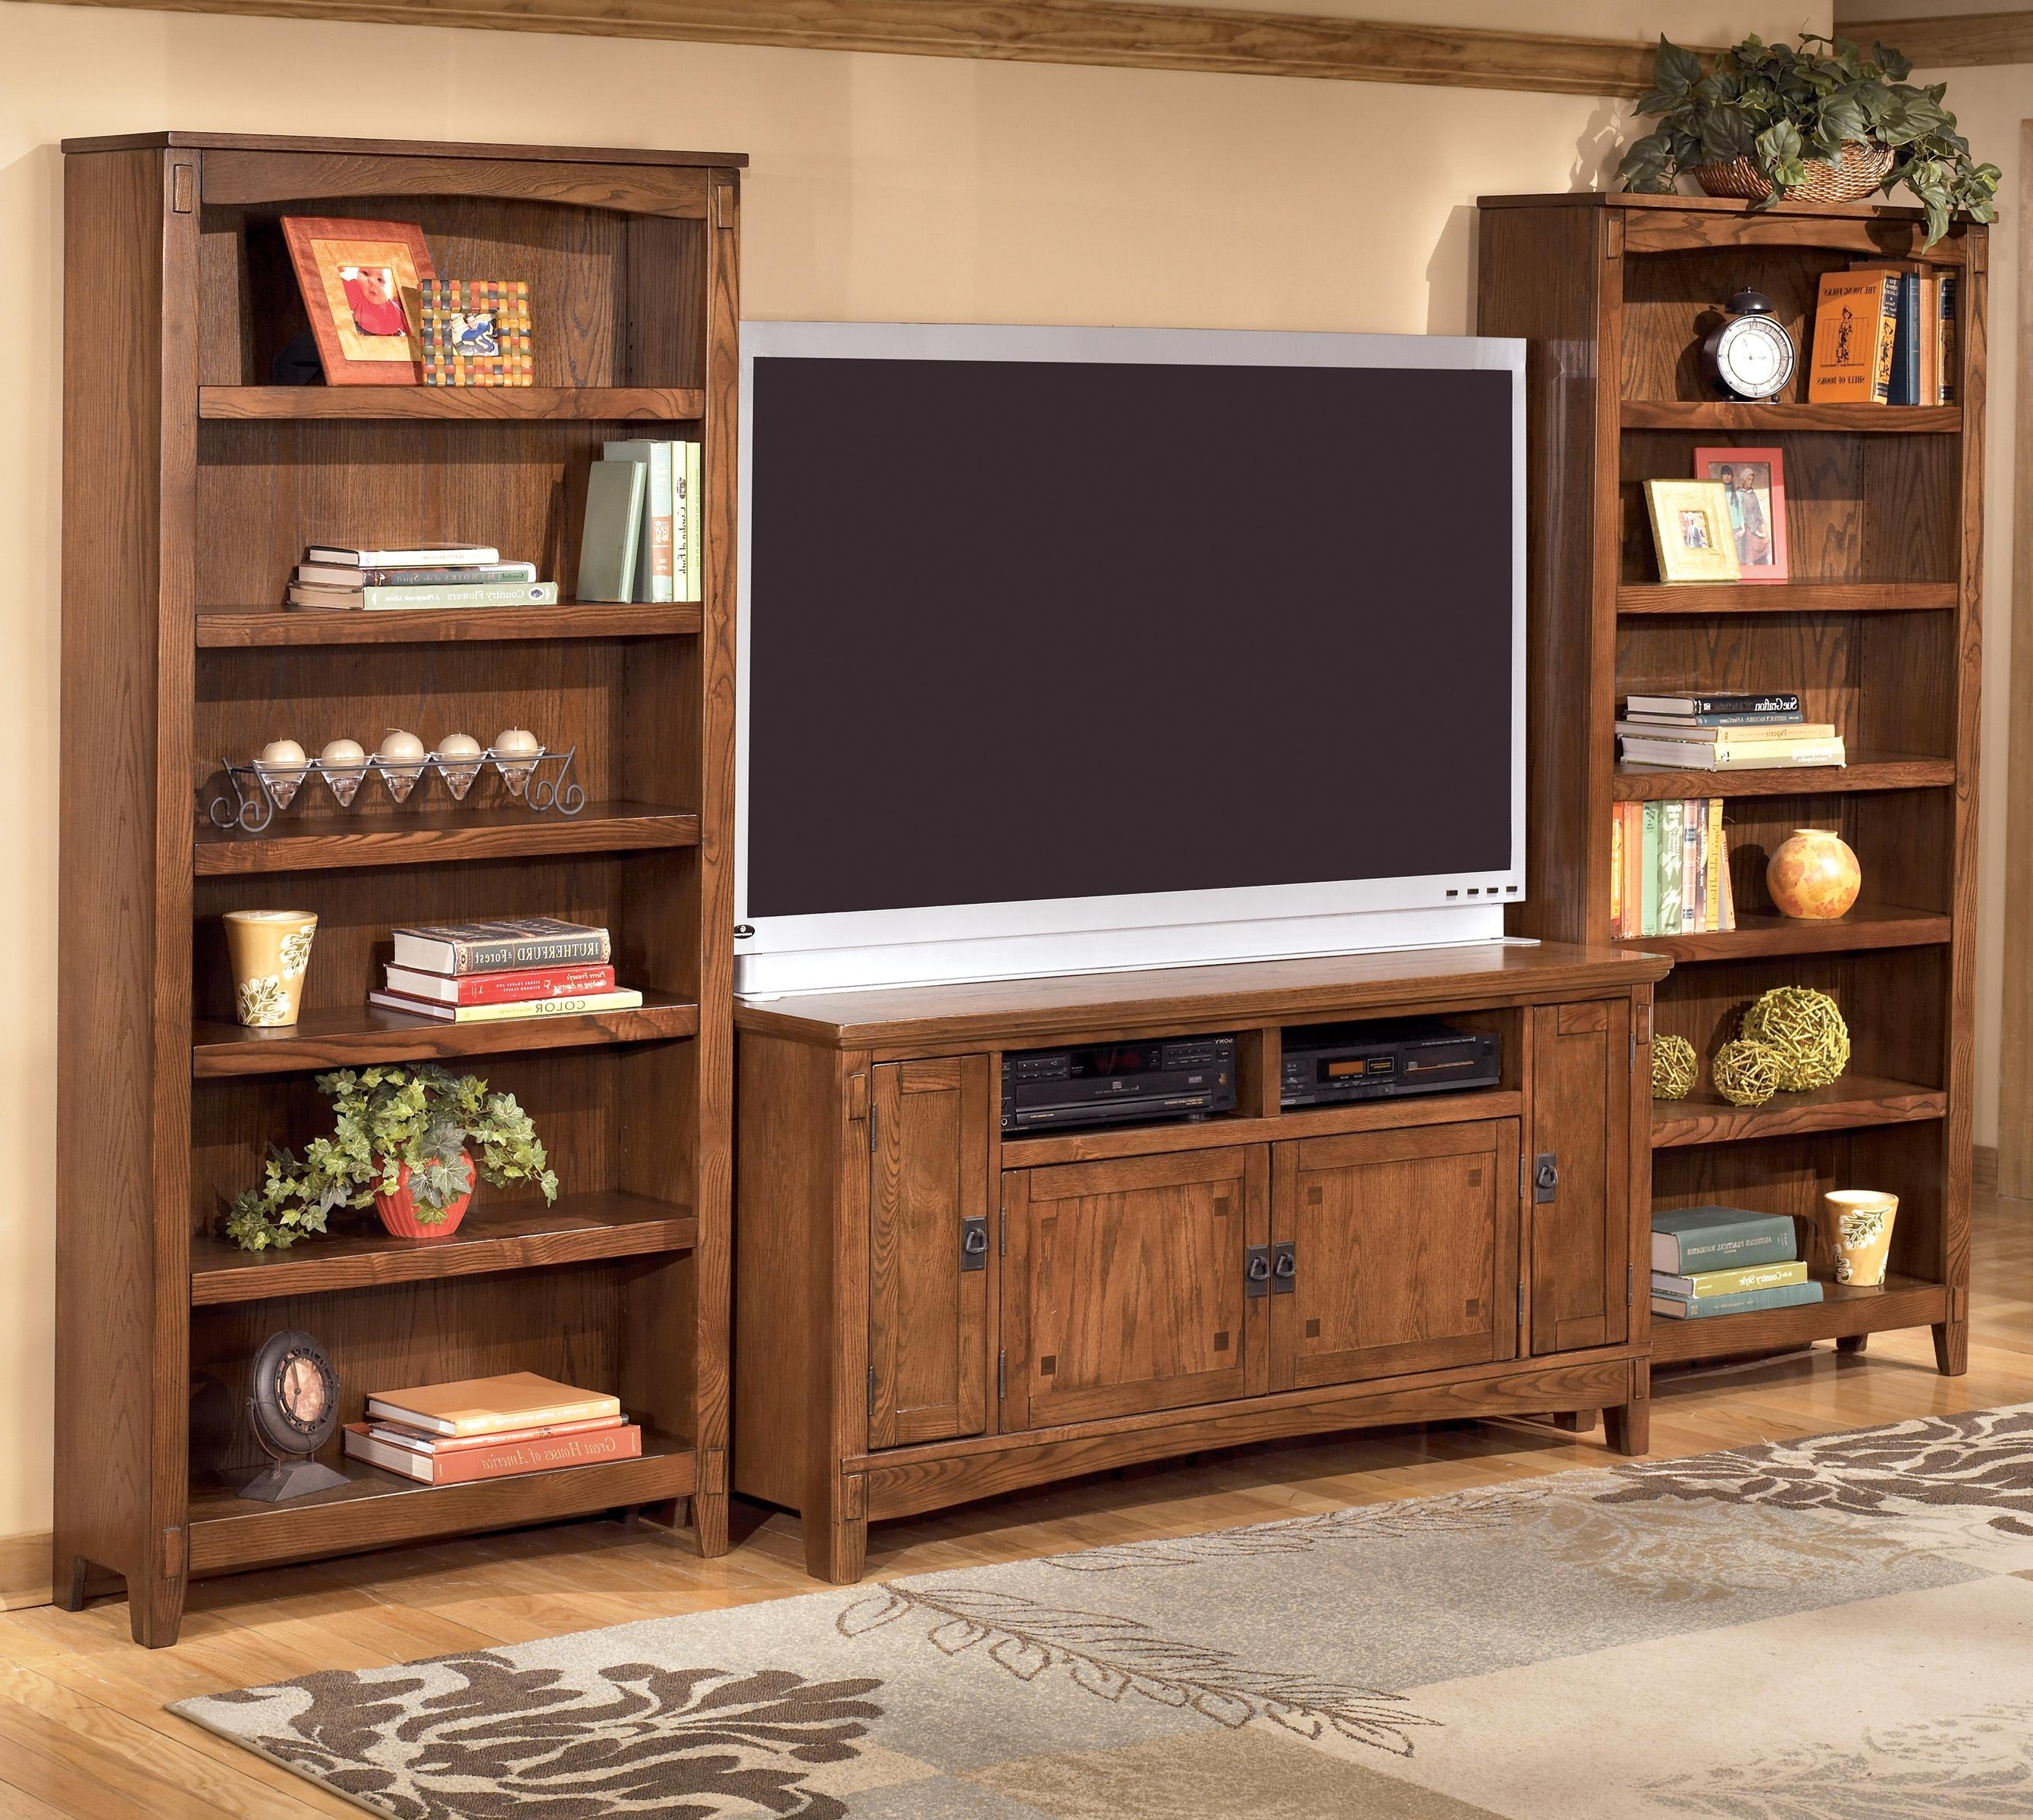 Favorite 60 Inch Tv Stand & 2 Large Bookcasesashley Furniture (View 9 of 15)